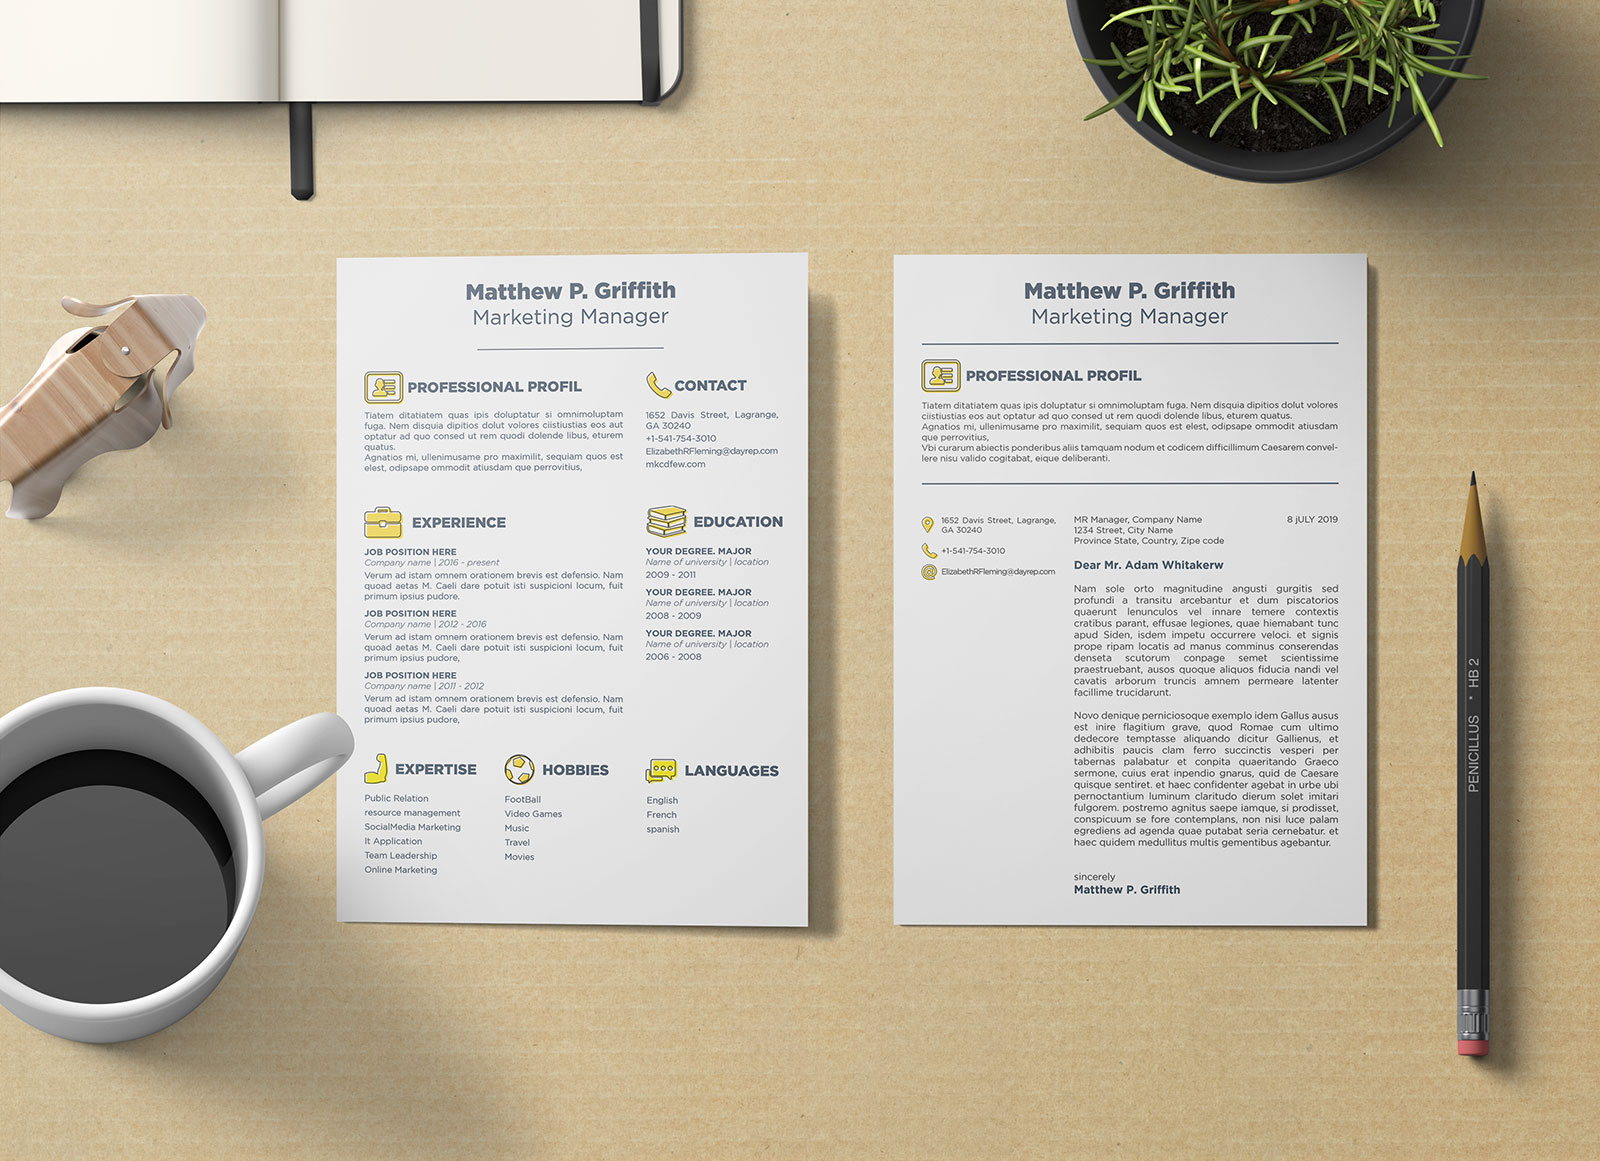 free resume   cv template  u0026 cover letter in word   psd  indd  u0026 ai for marketing managers